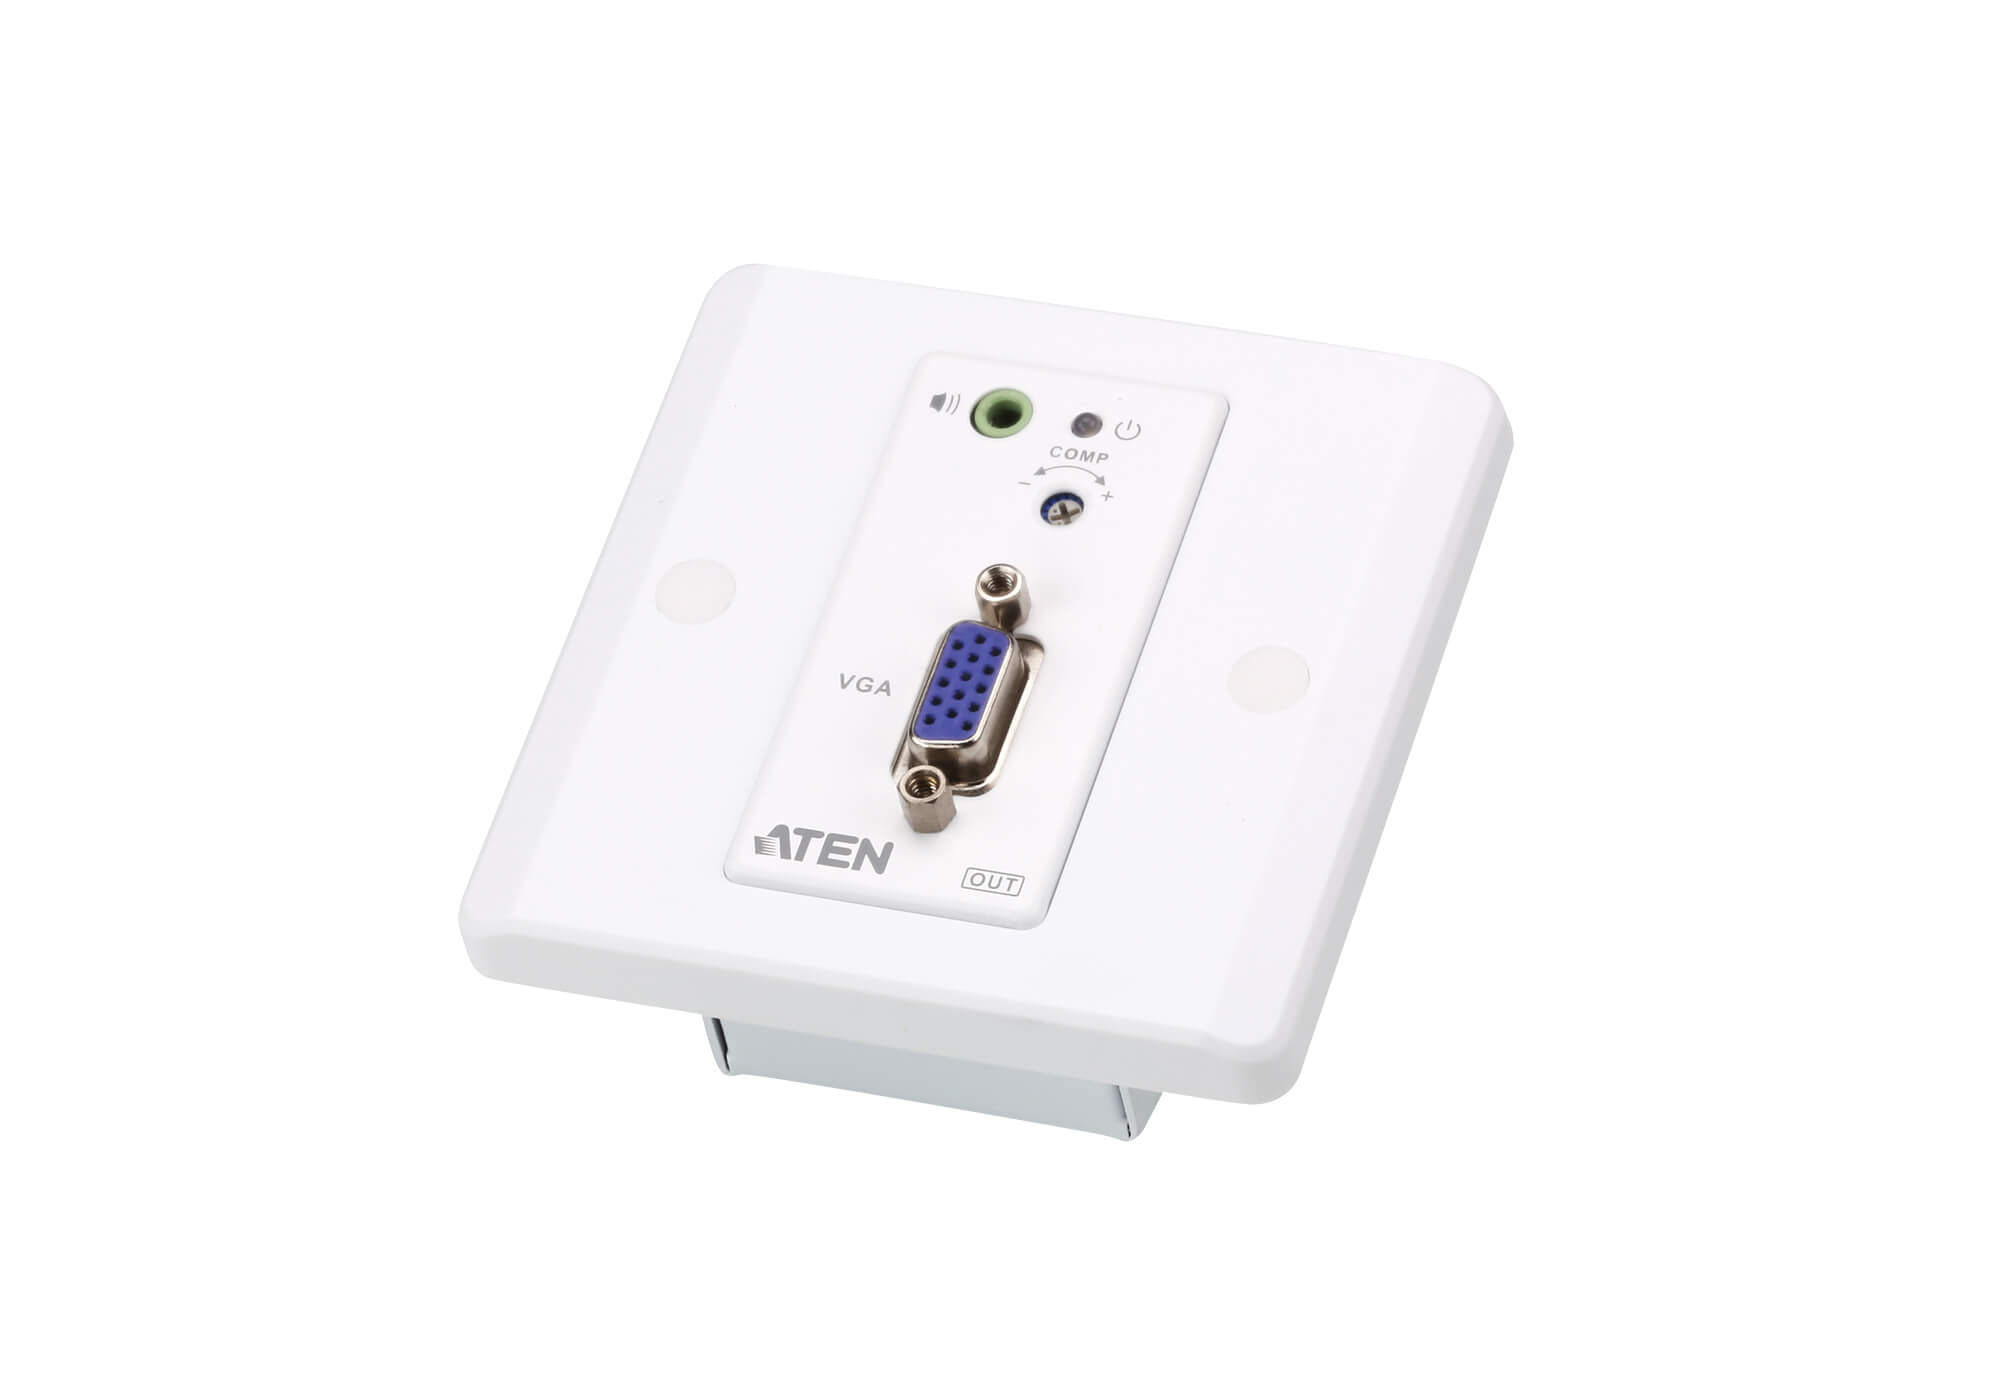 VGA/Audio Cat 5 Extender with MK Wall Plate (1280 x 1024 @150 m)-4